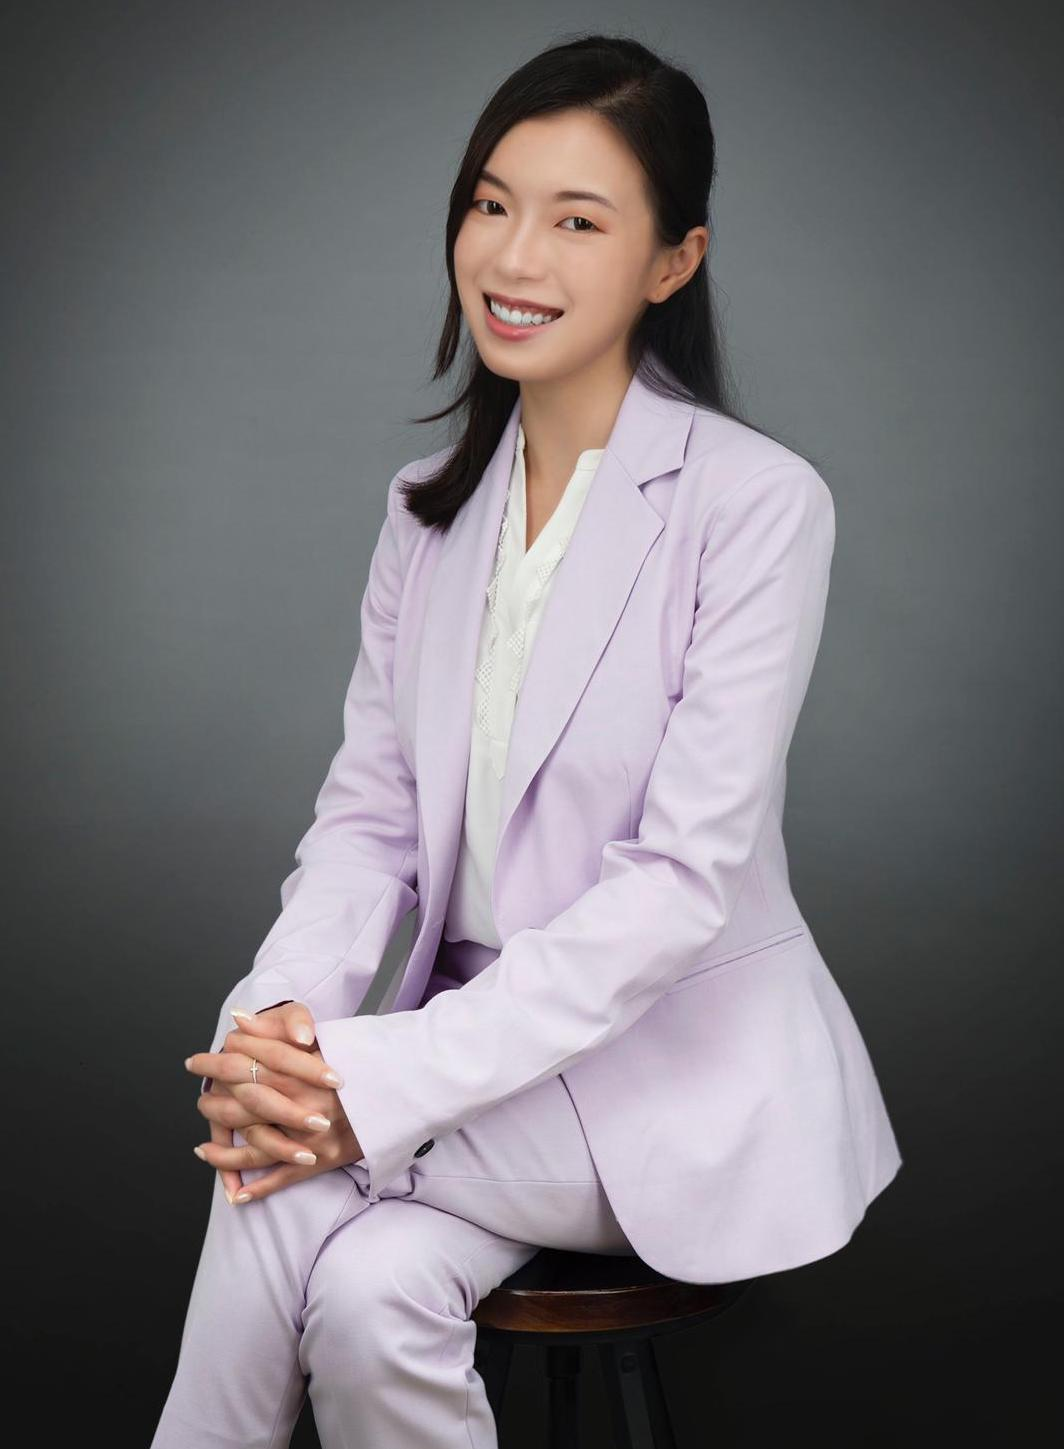 Asian woman in lavender business suit sitting on a chair